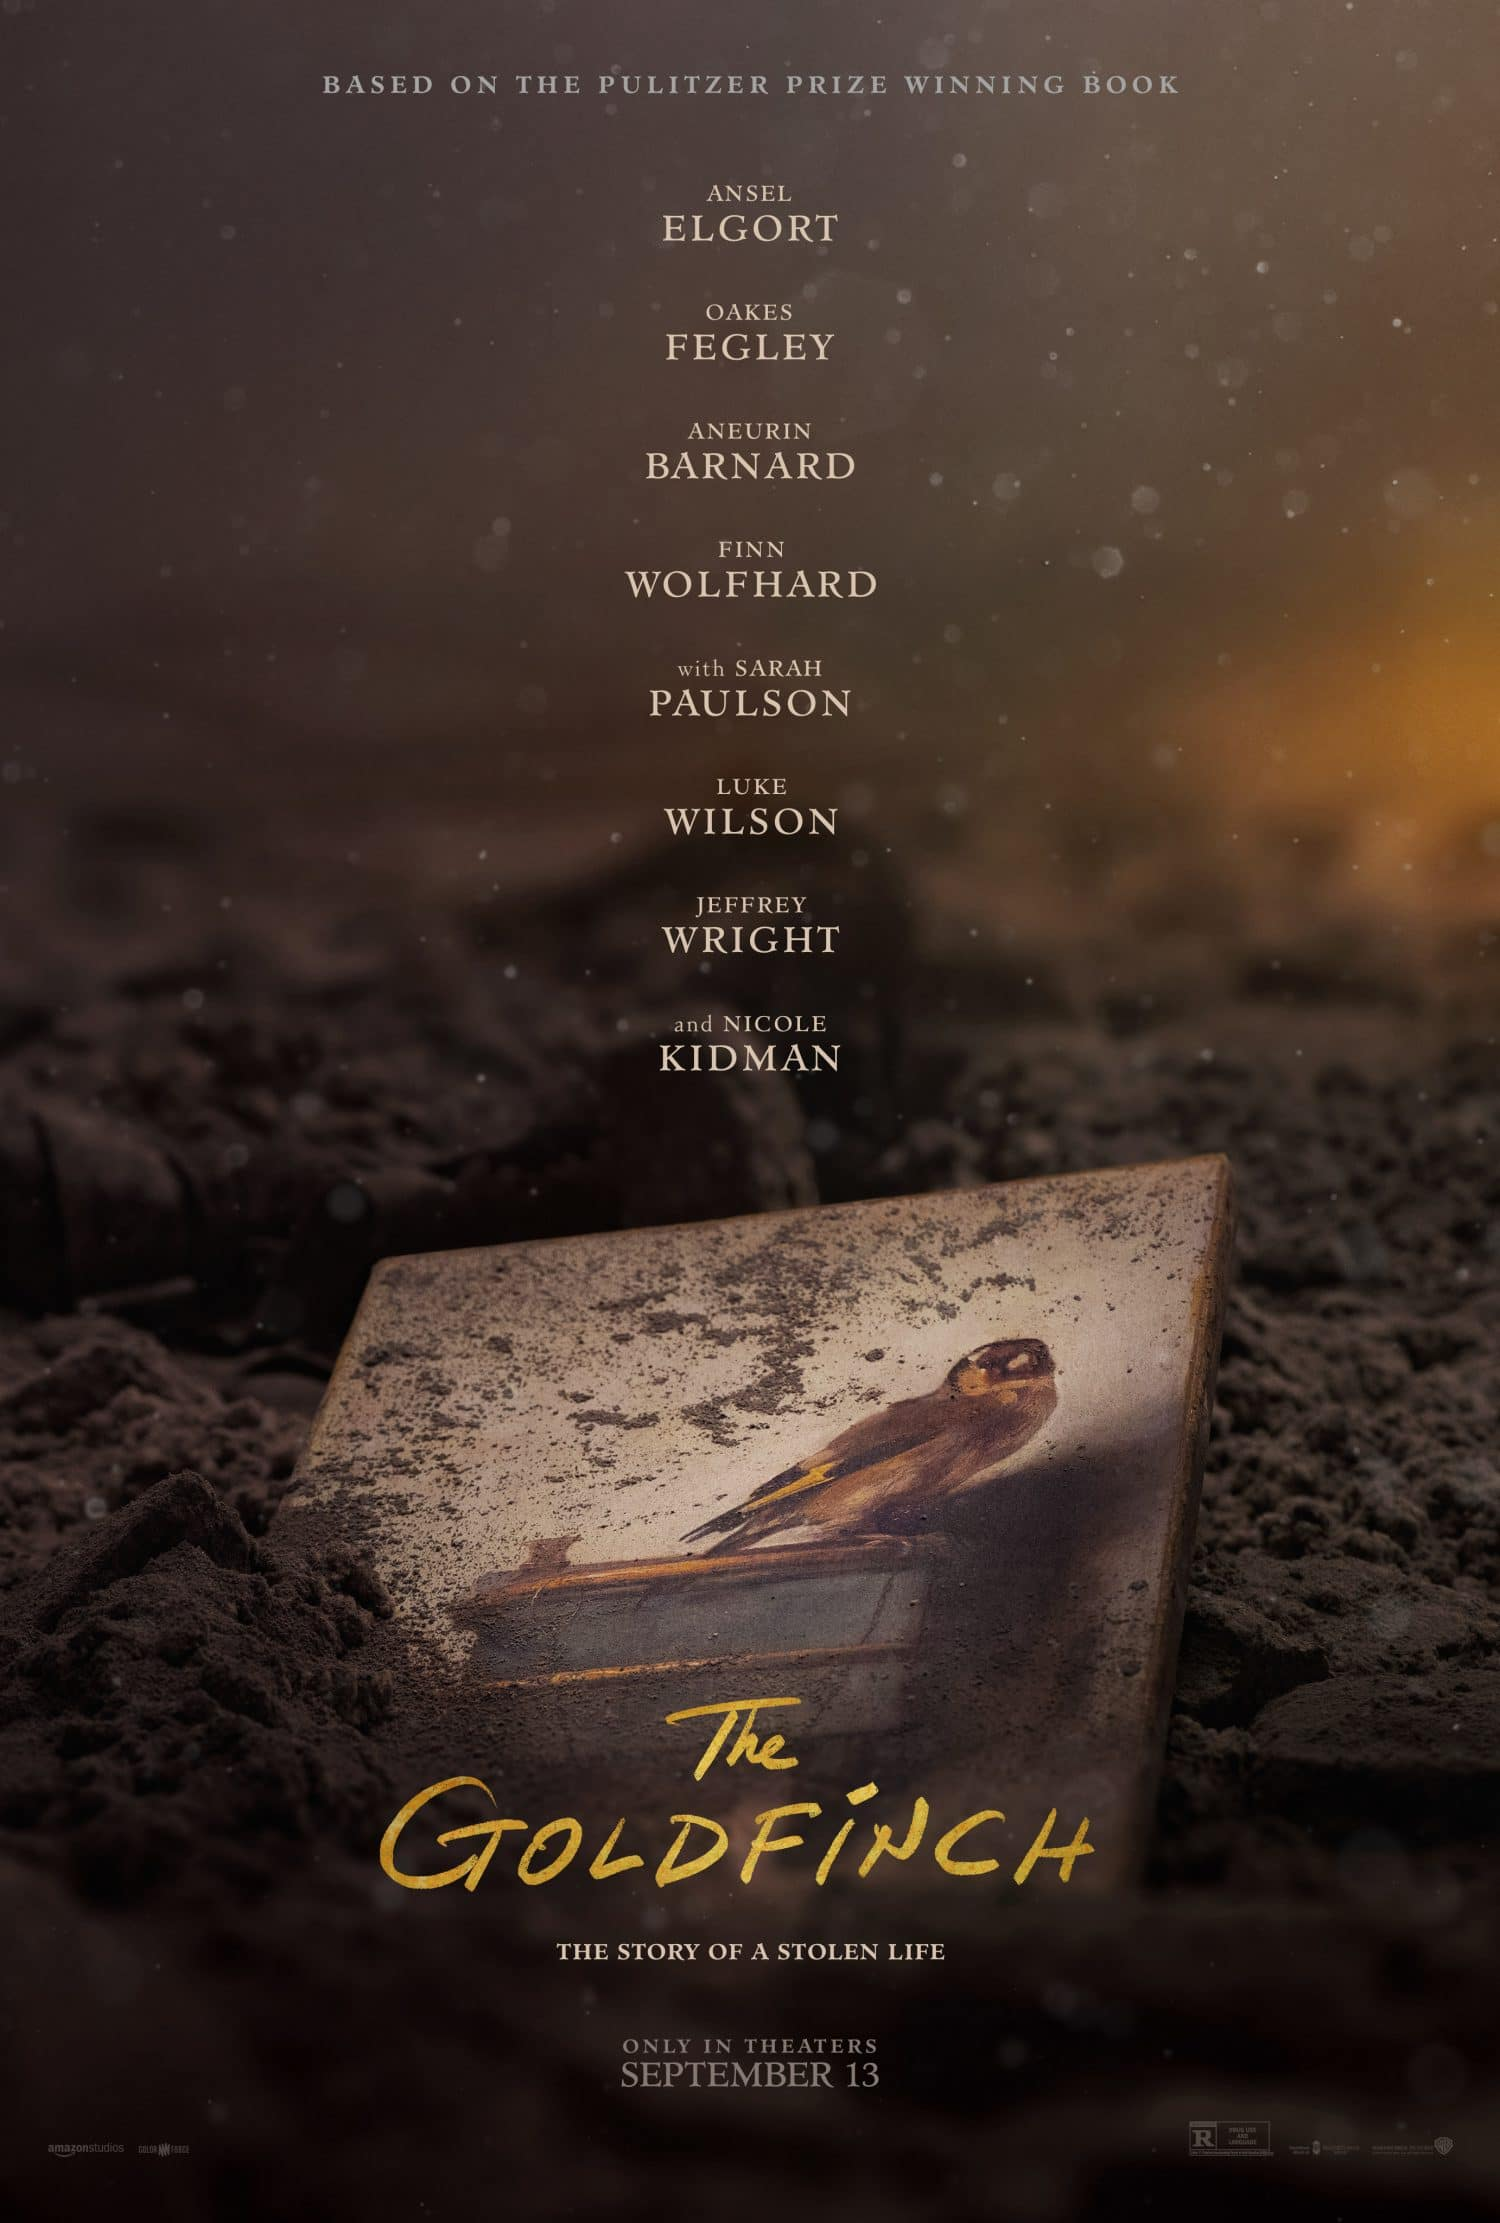 Watch the Goldfinch movie trailer.